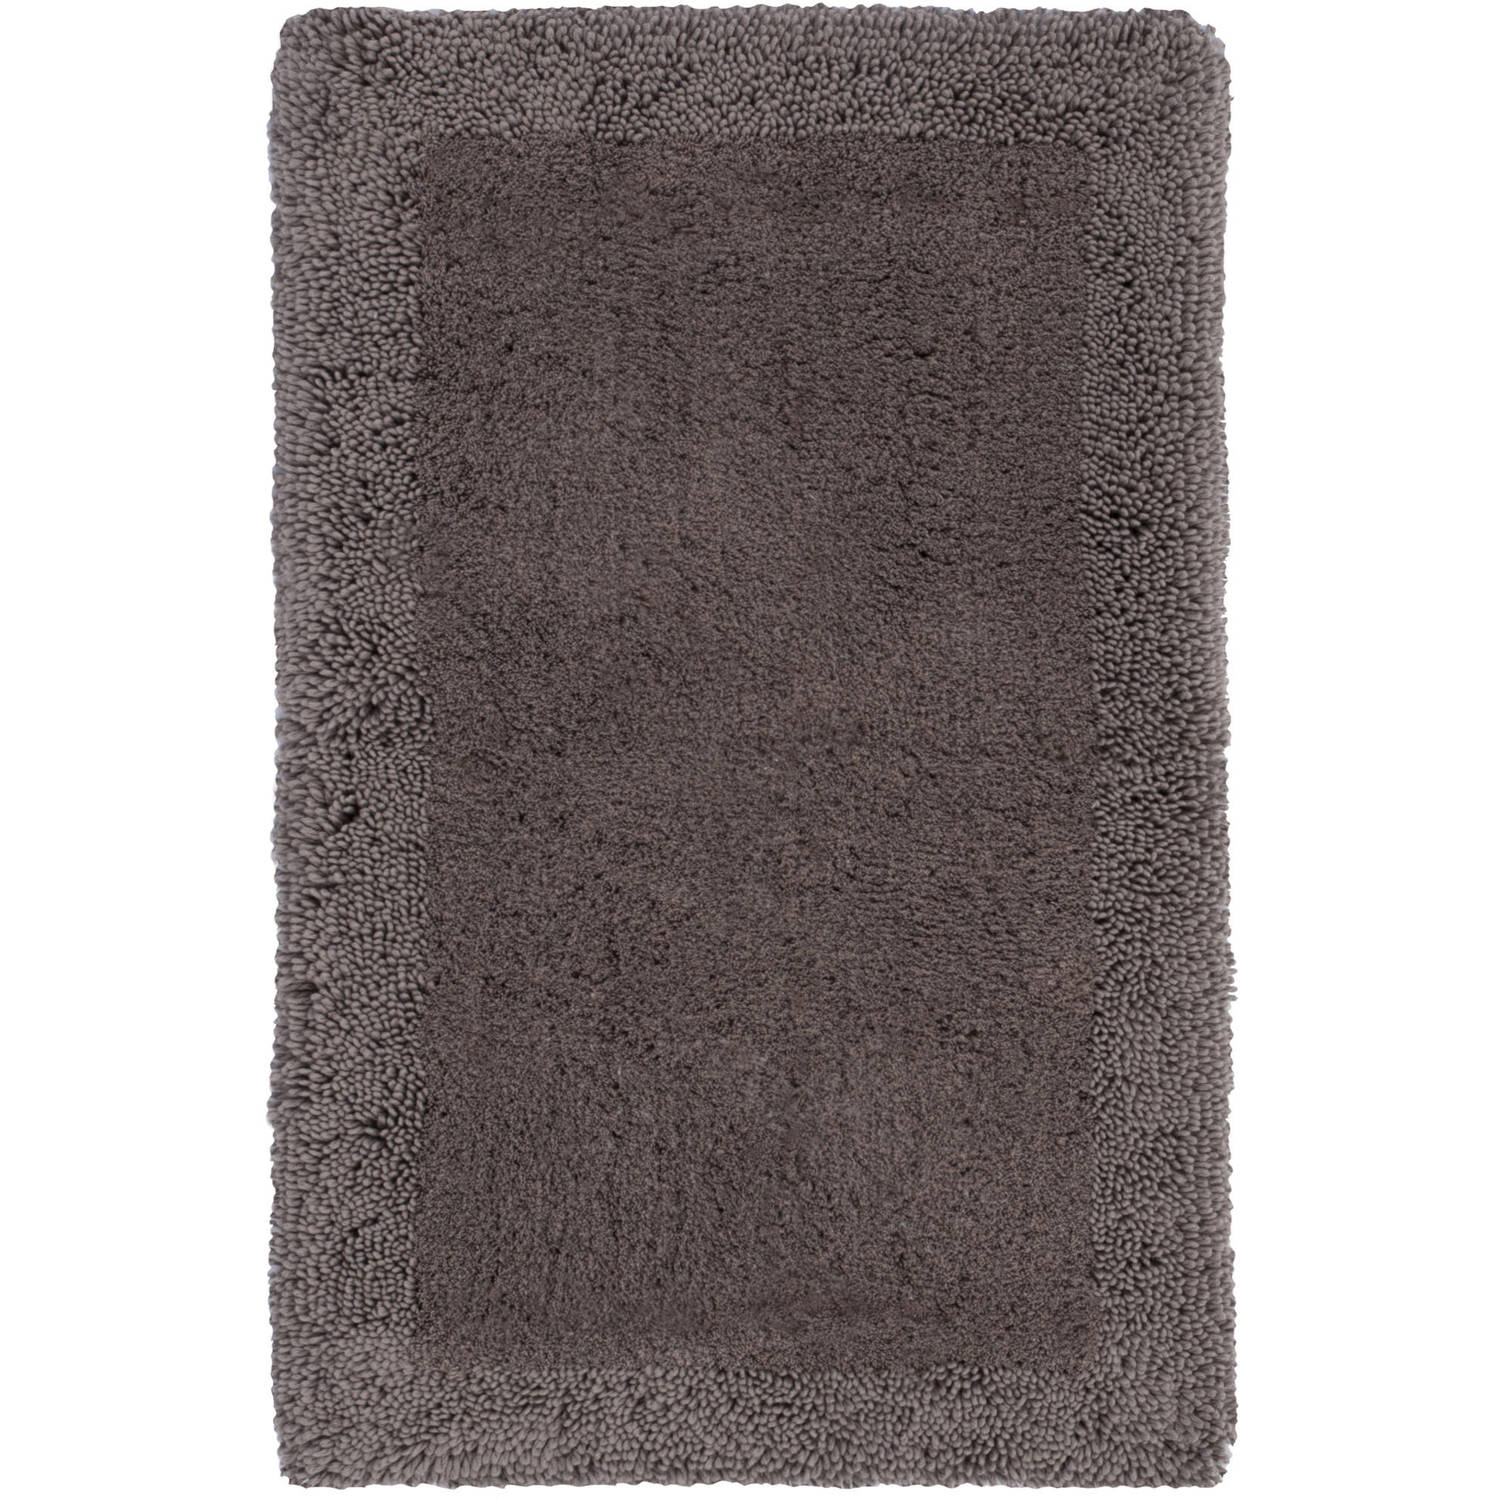 Hotel Style Solid Bath Rugs by WELSPUN GLOBAL BRANDS LIMITED